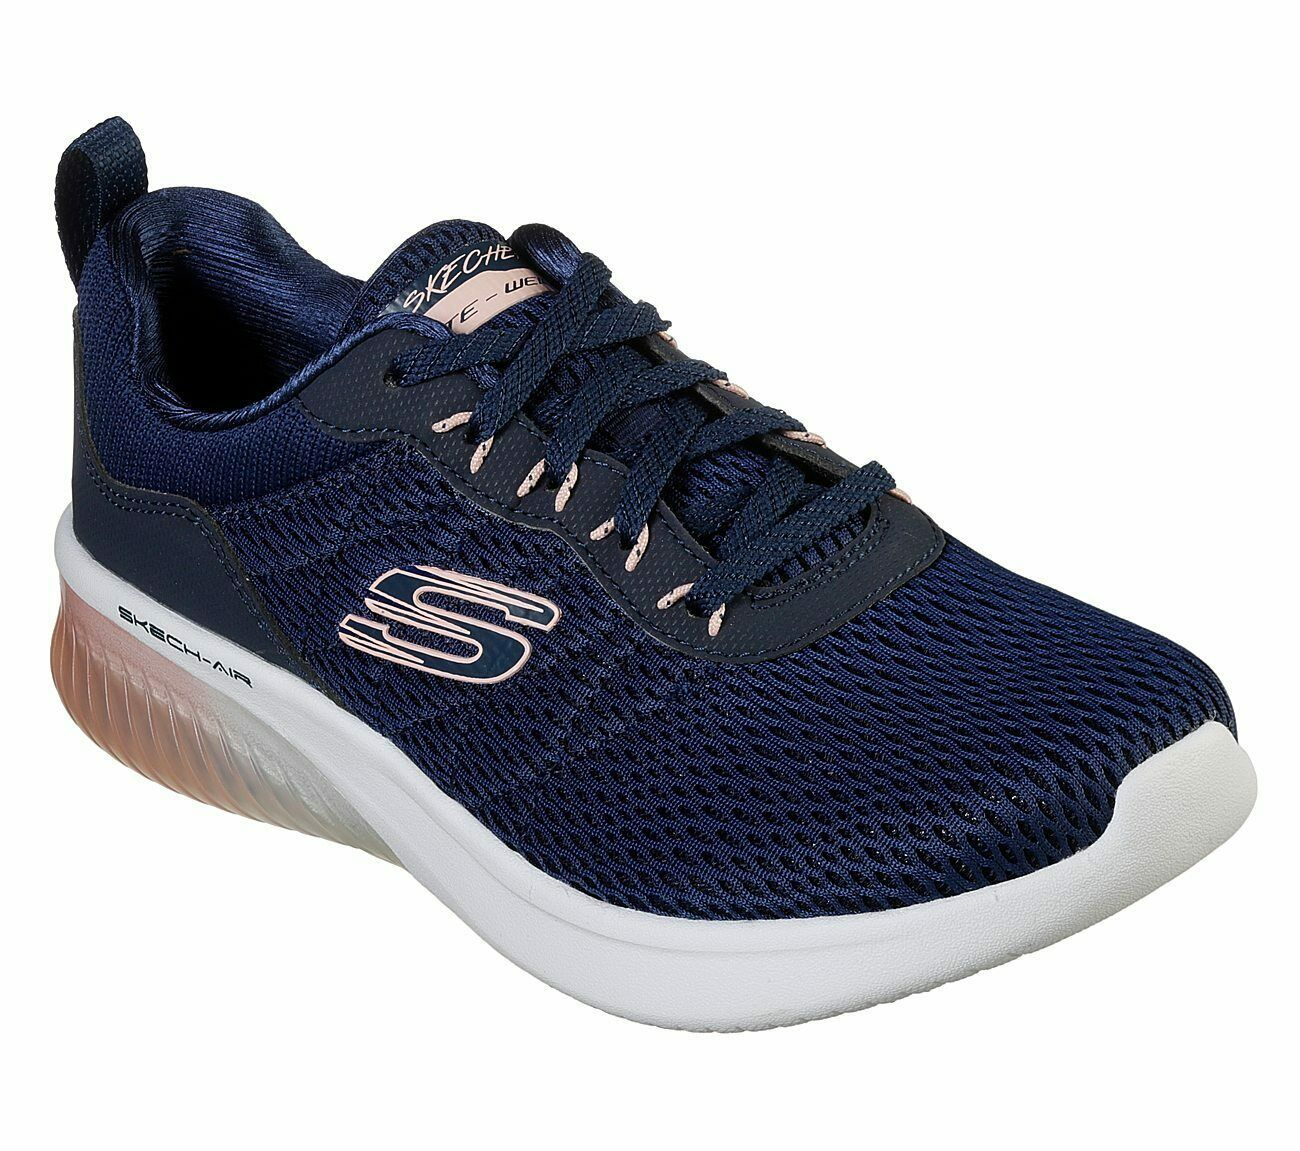 Skechers Navy Pink shoes Memory Foam Women's Sporty Air Ultra Flex Comfort 13290